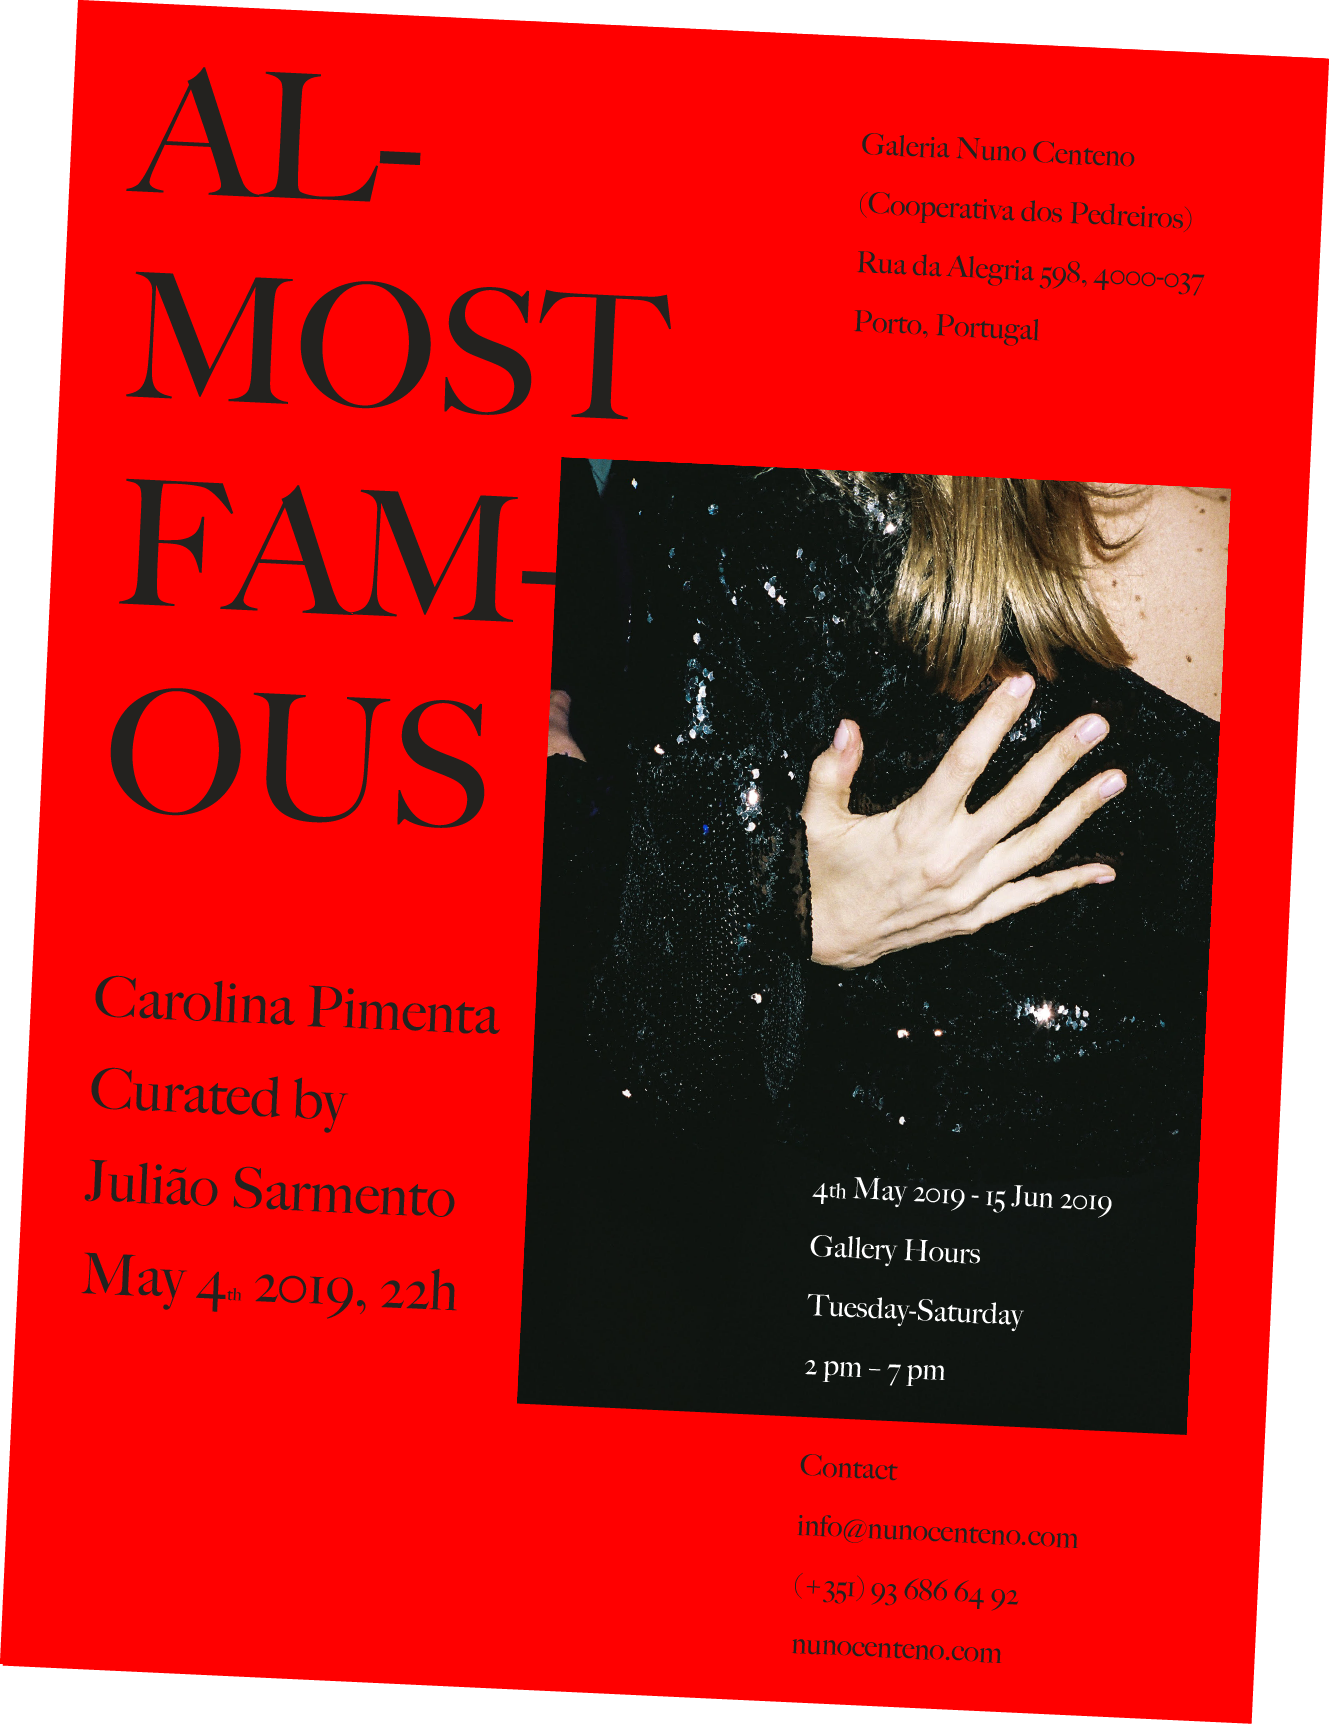 Almost Famous ,  Galeria Nuno Centeno , Porto, PT, 4 May - 11 June 2019  Opening of  Almost Famous  exhibition at Galeria Nuno Centeno, May 4th at 10pm.